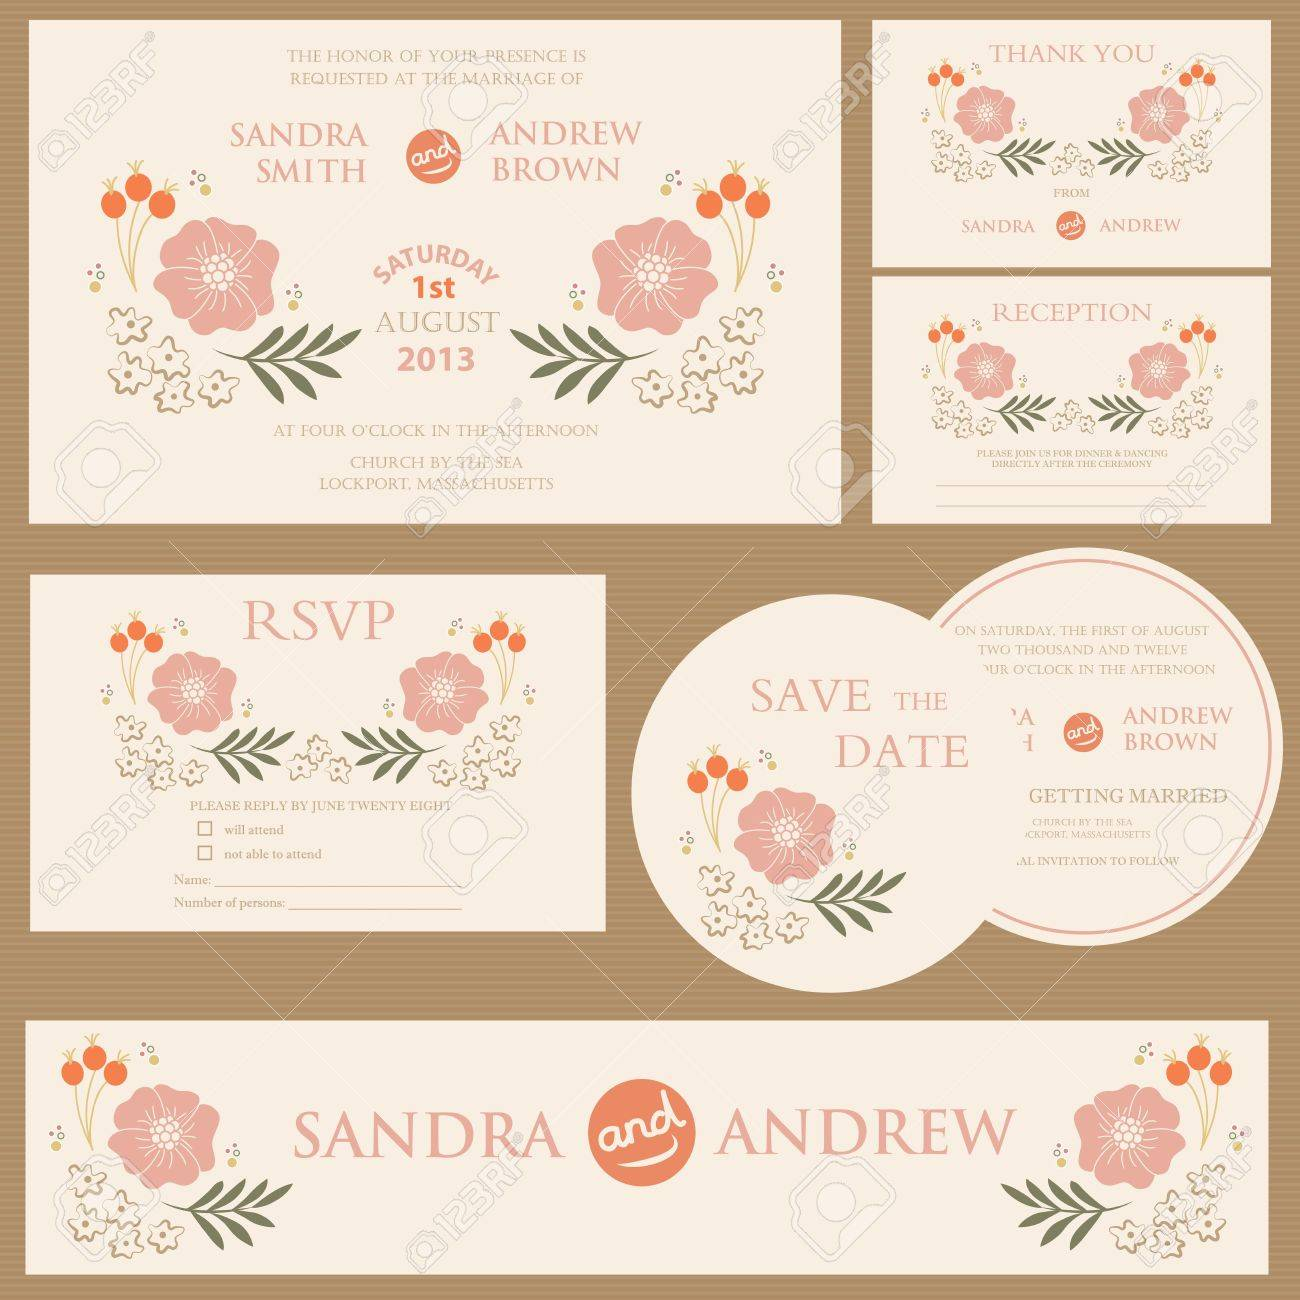 Beautiful vintage wedding invitation cards royalty free cliparts beautiful vintage wedding invitation cards stock vector 20861442 stopboris Image collections